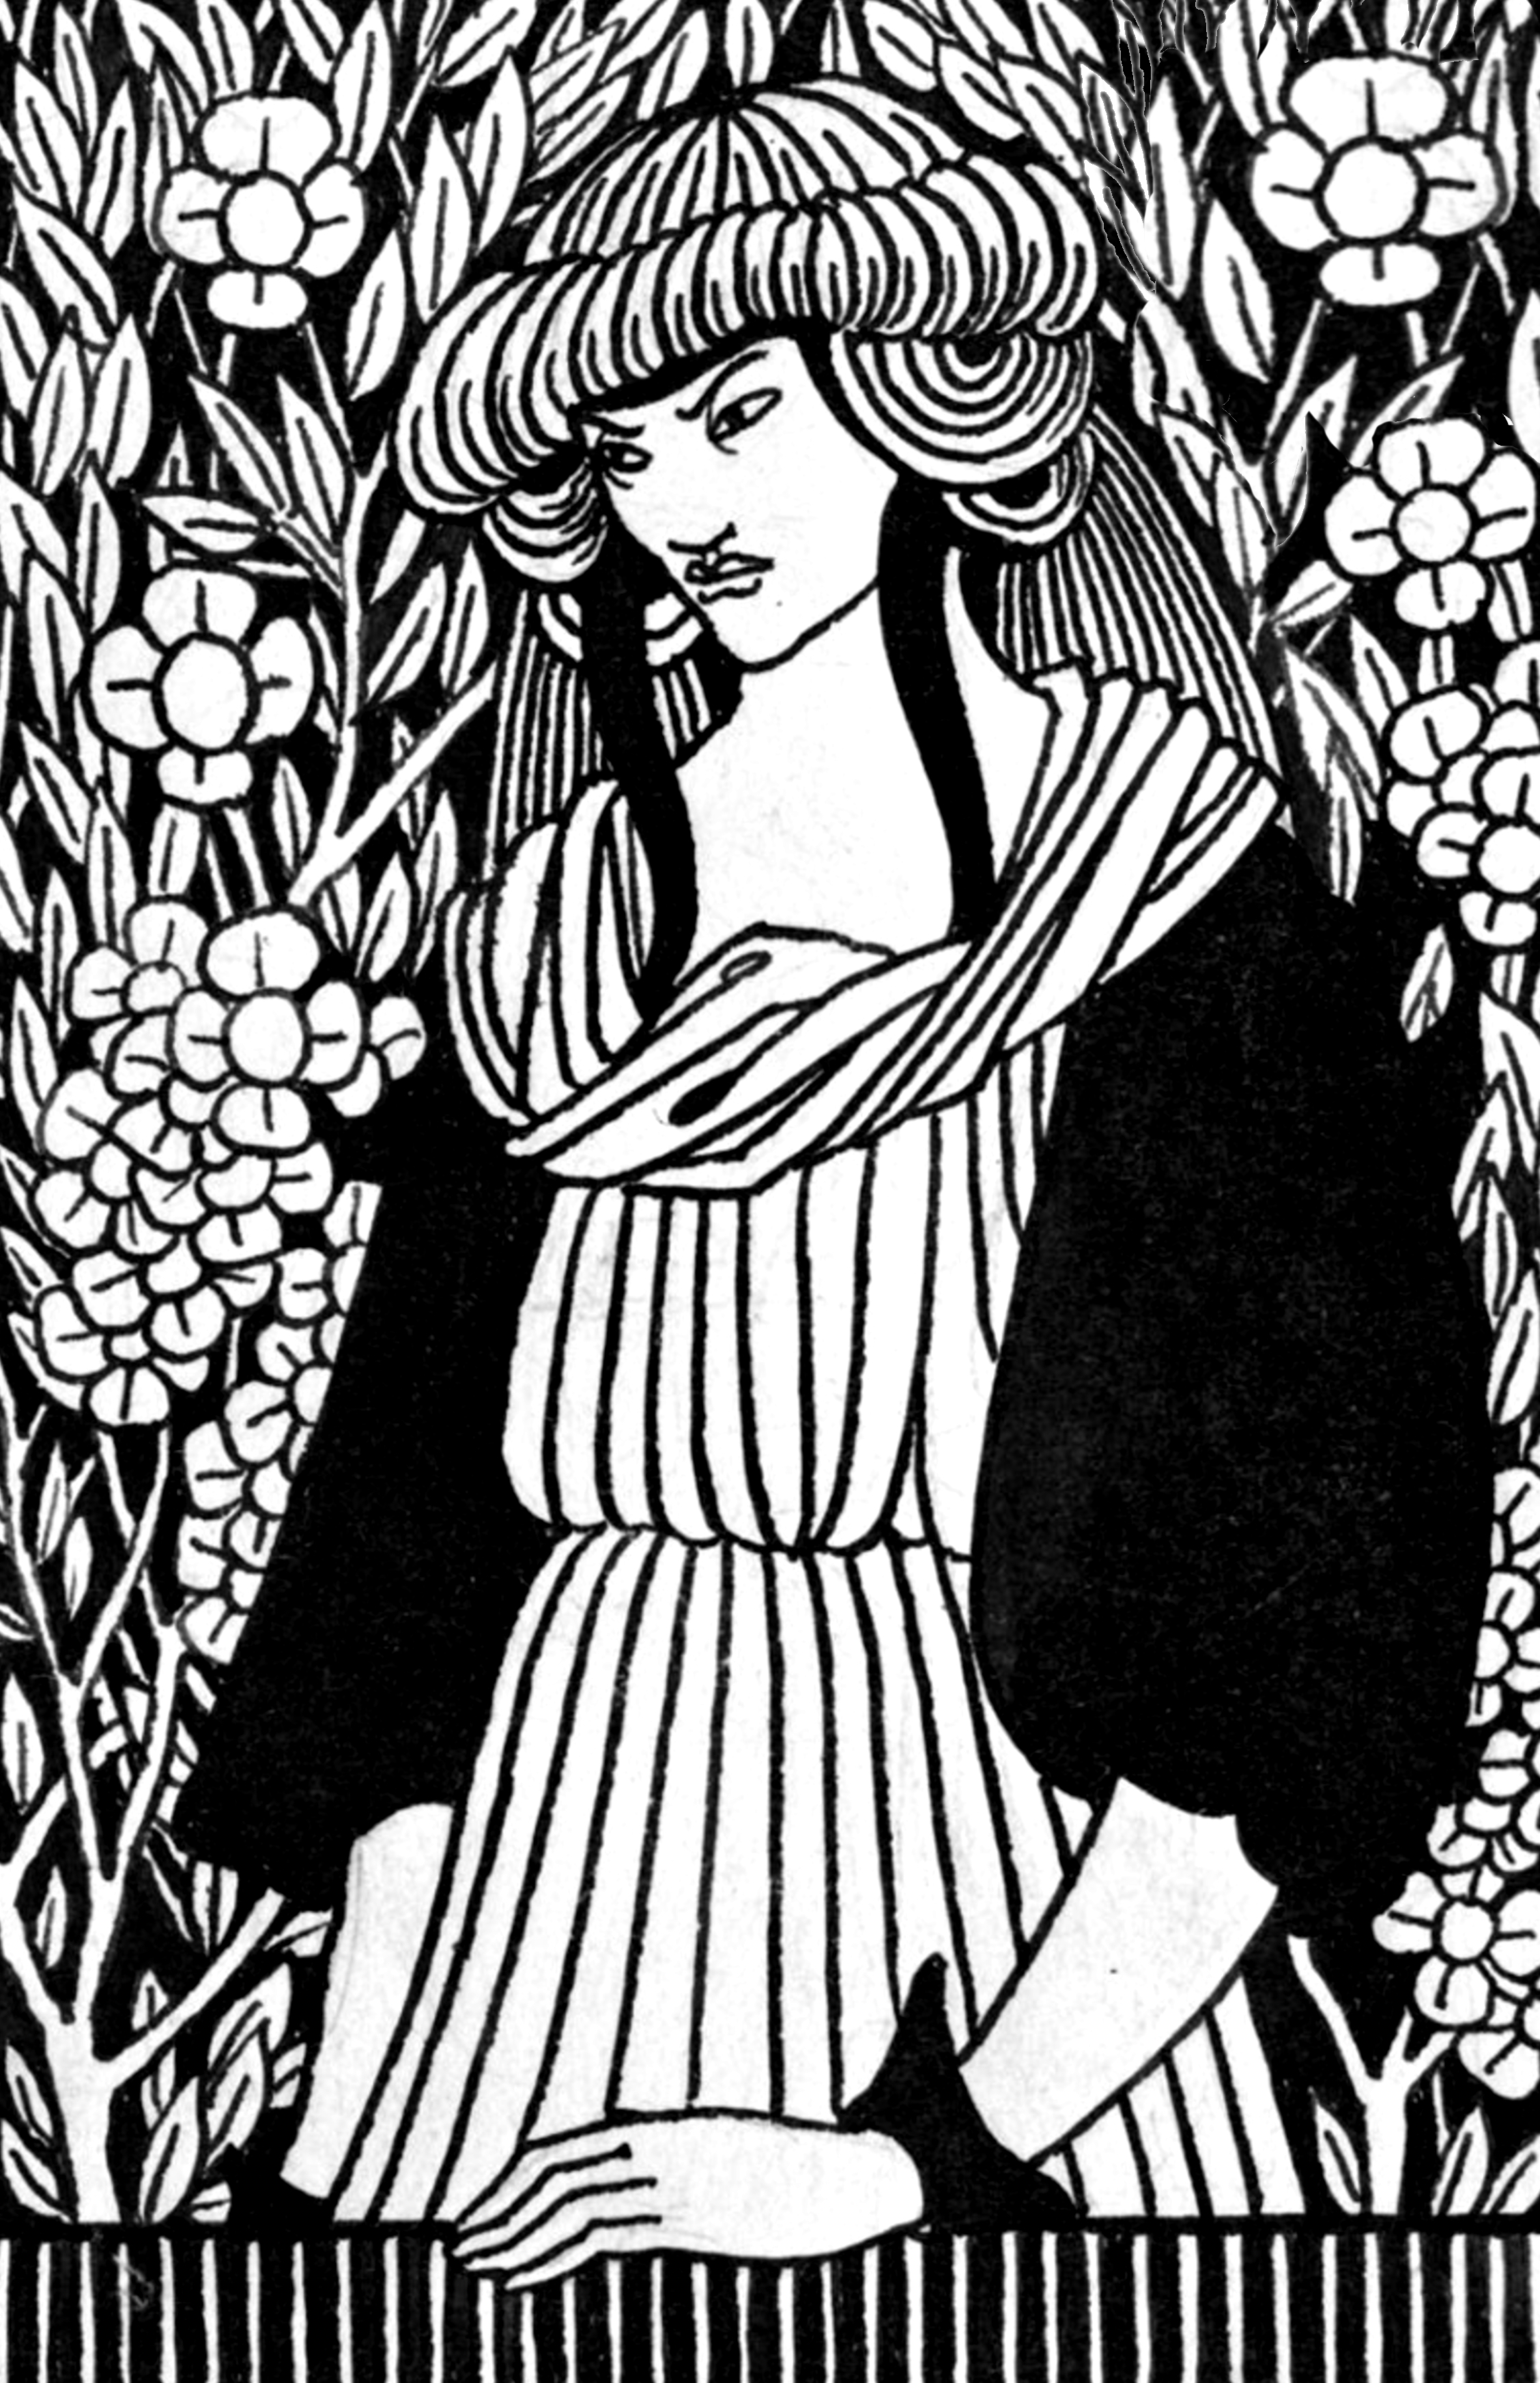 - Free Downloadable Coloring Pages: The Aubrey Beardsley Coloring